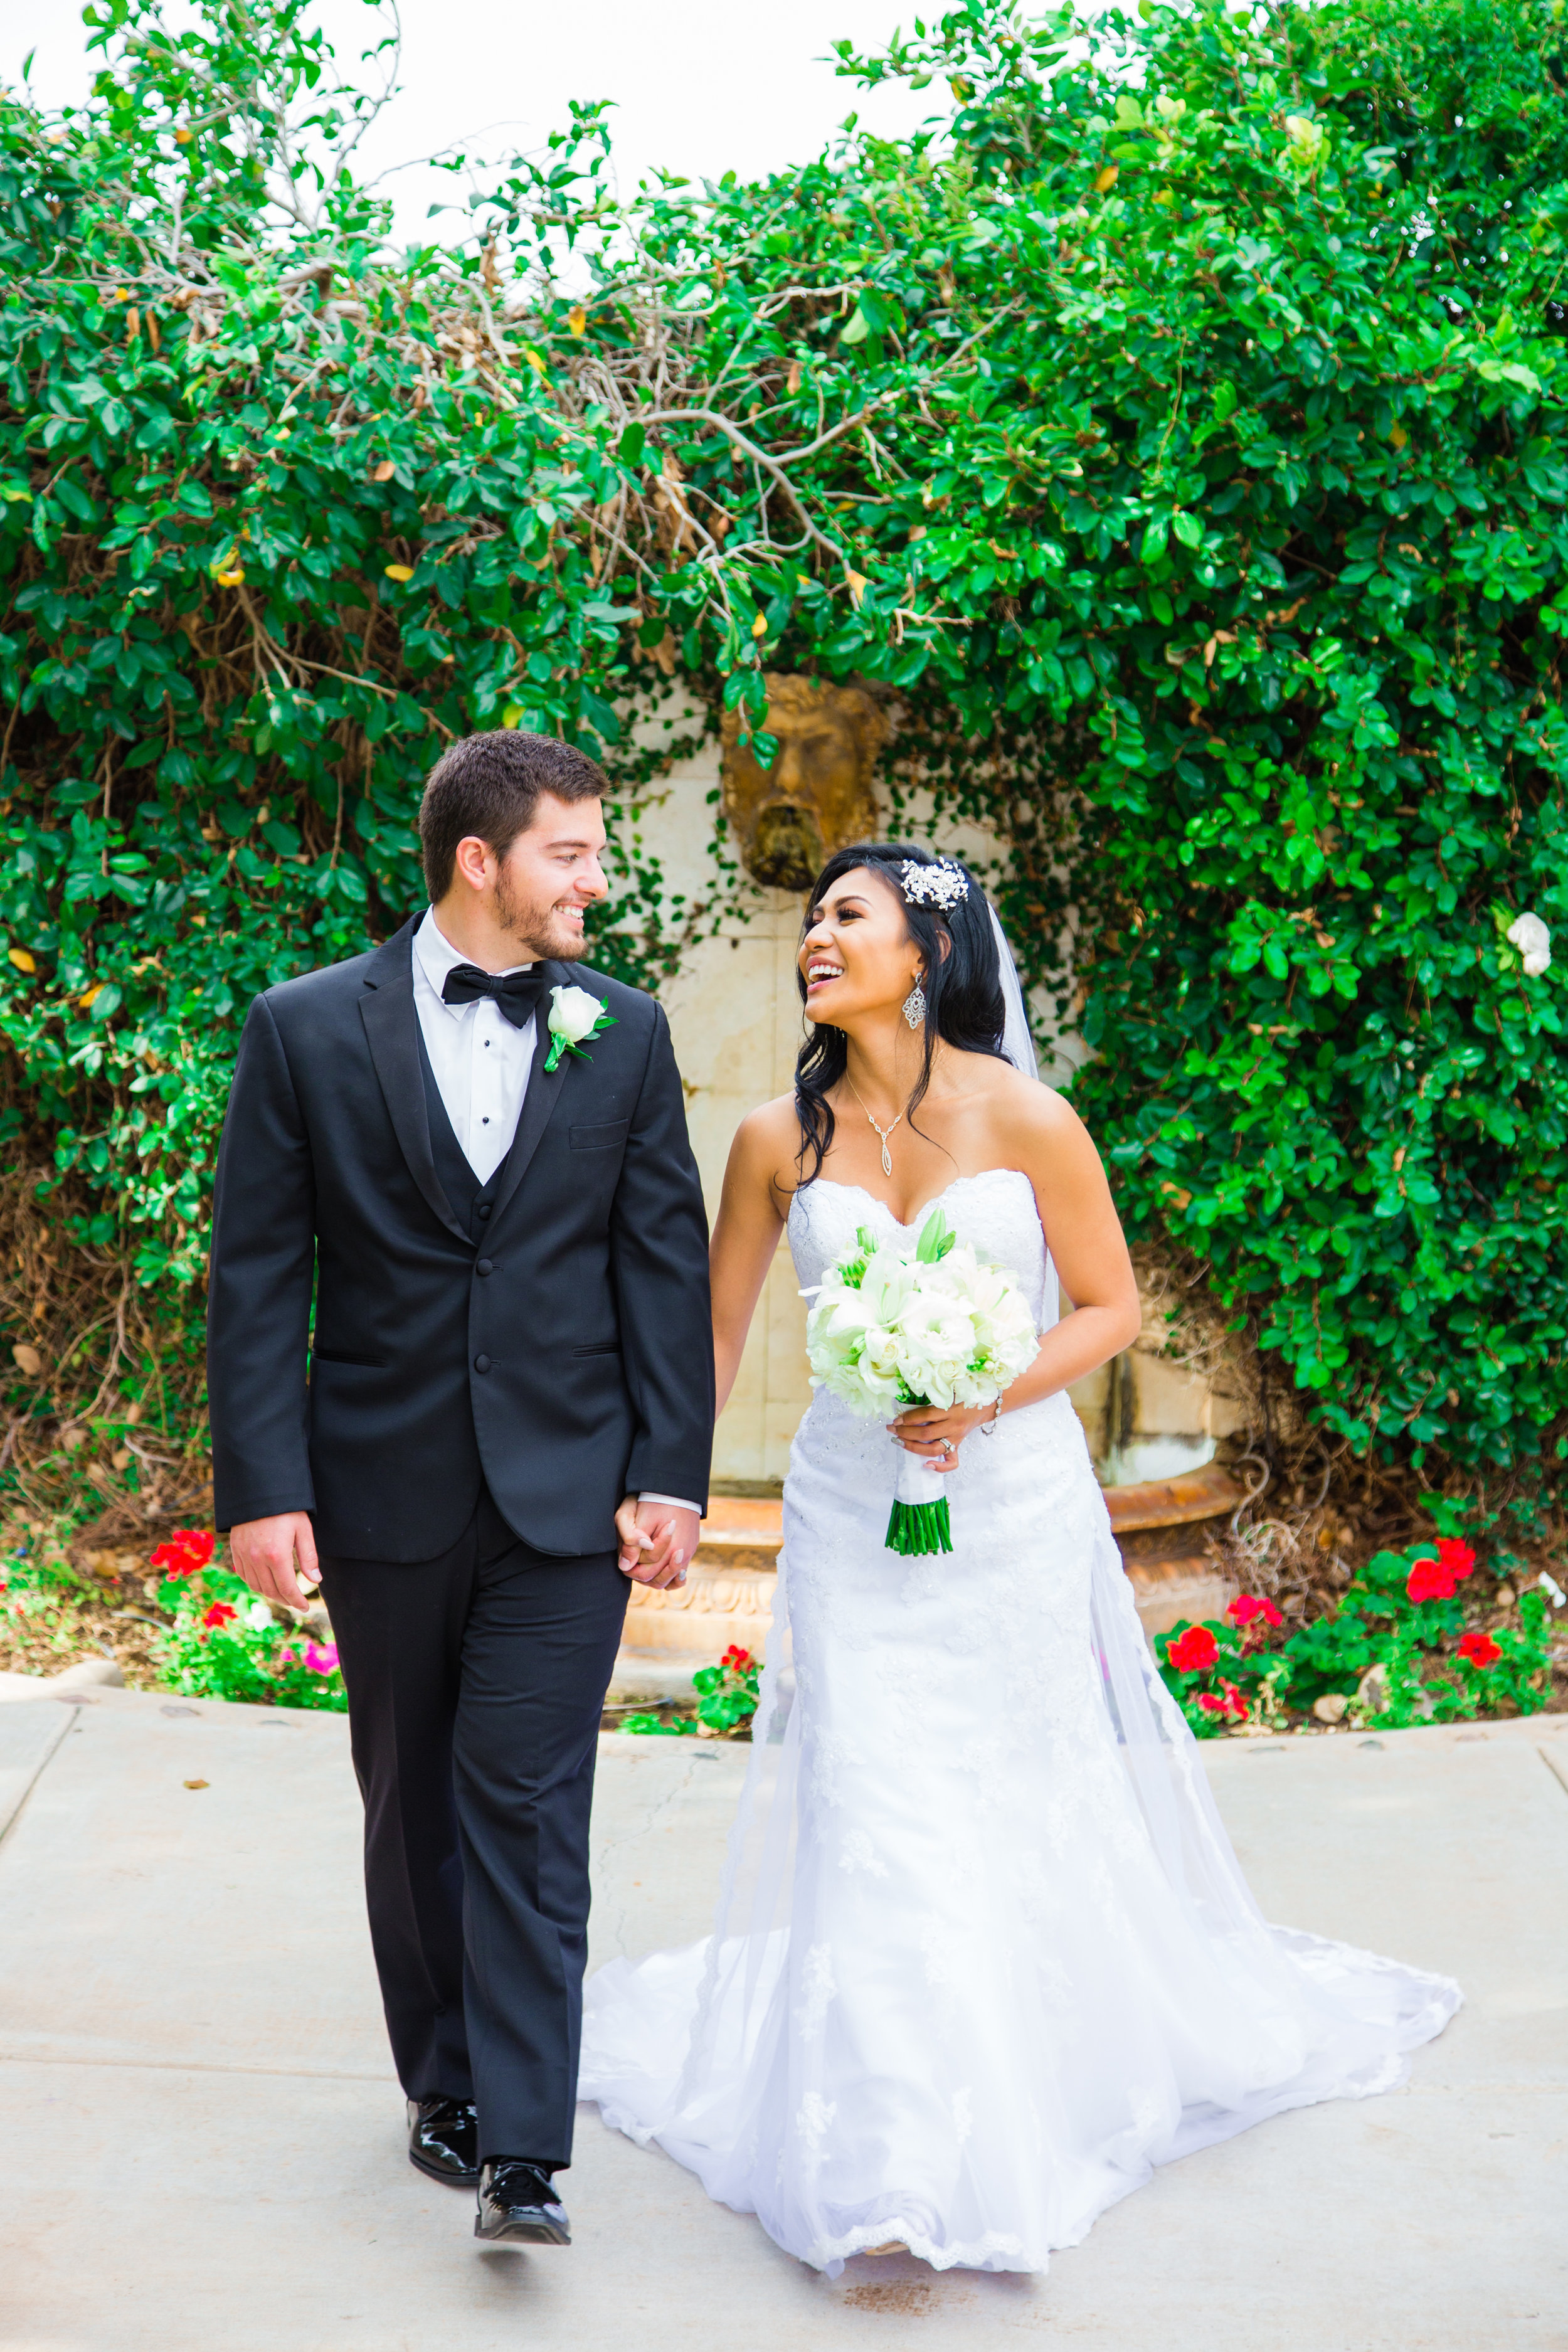 AshleyCastleWedding-GrizzardII-902.jpg